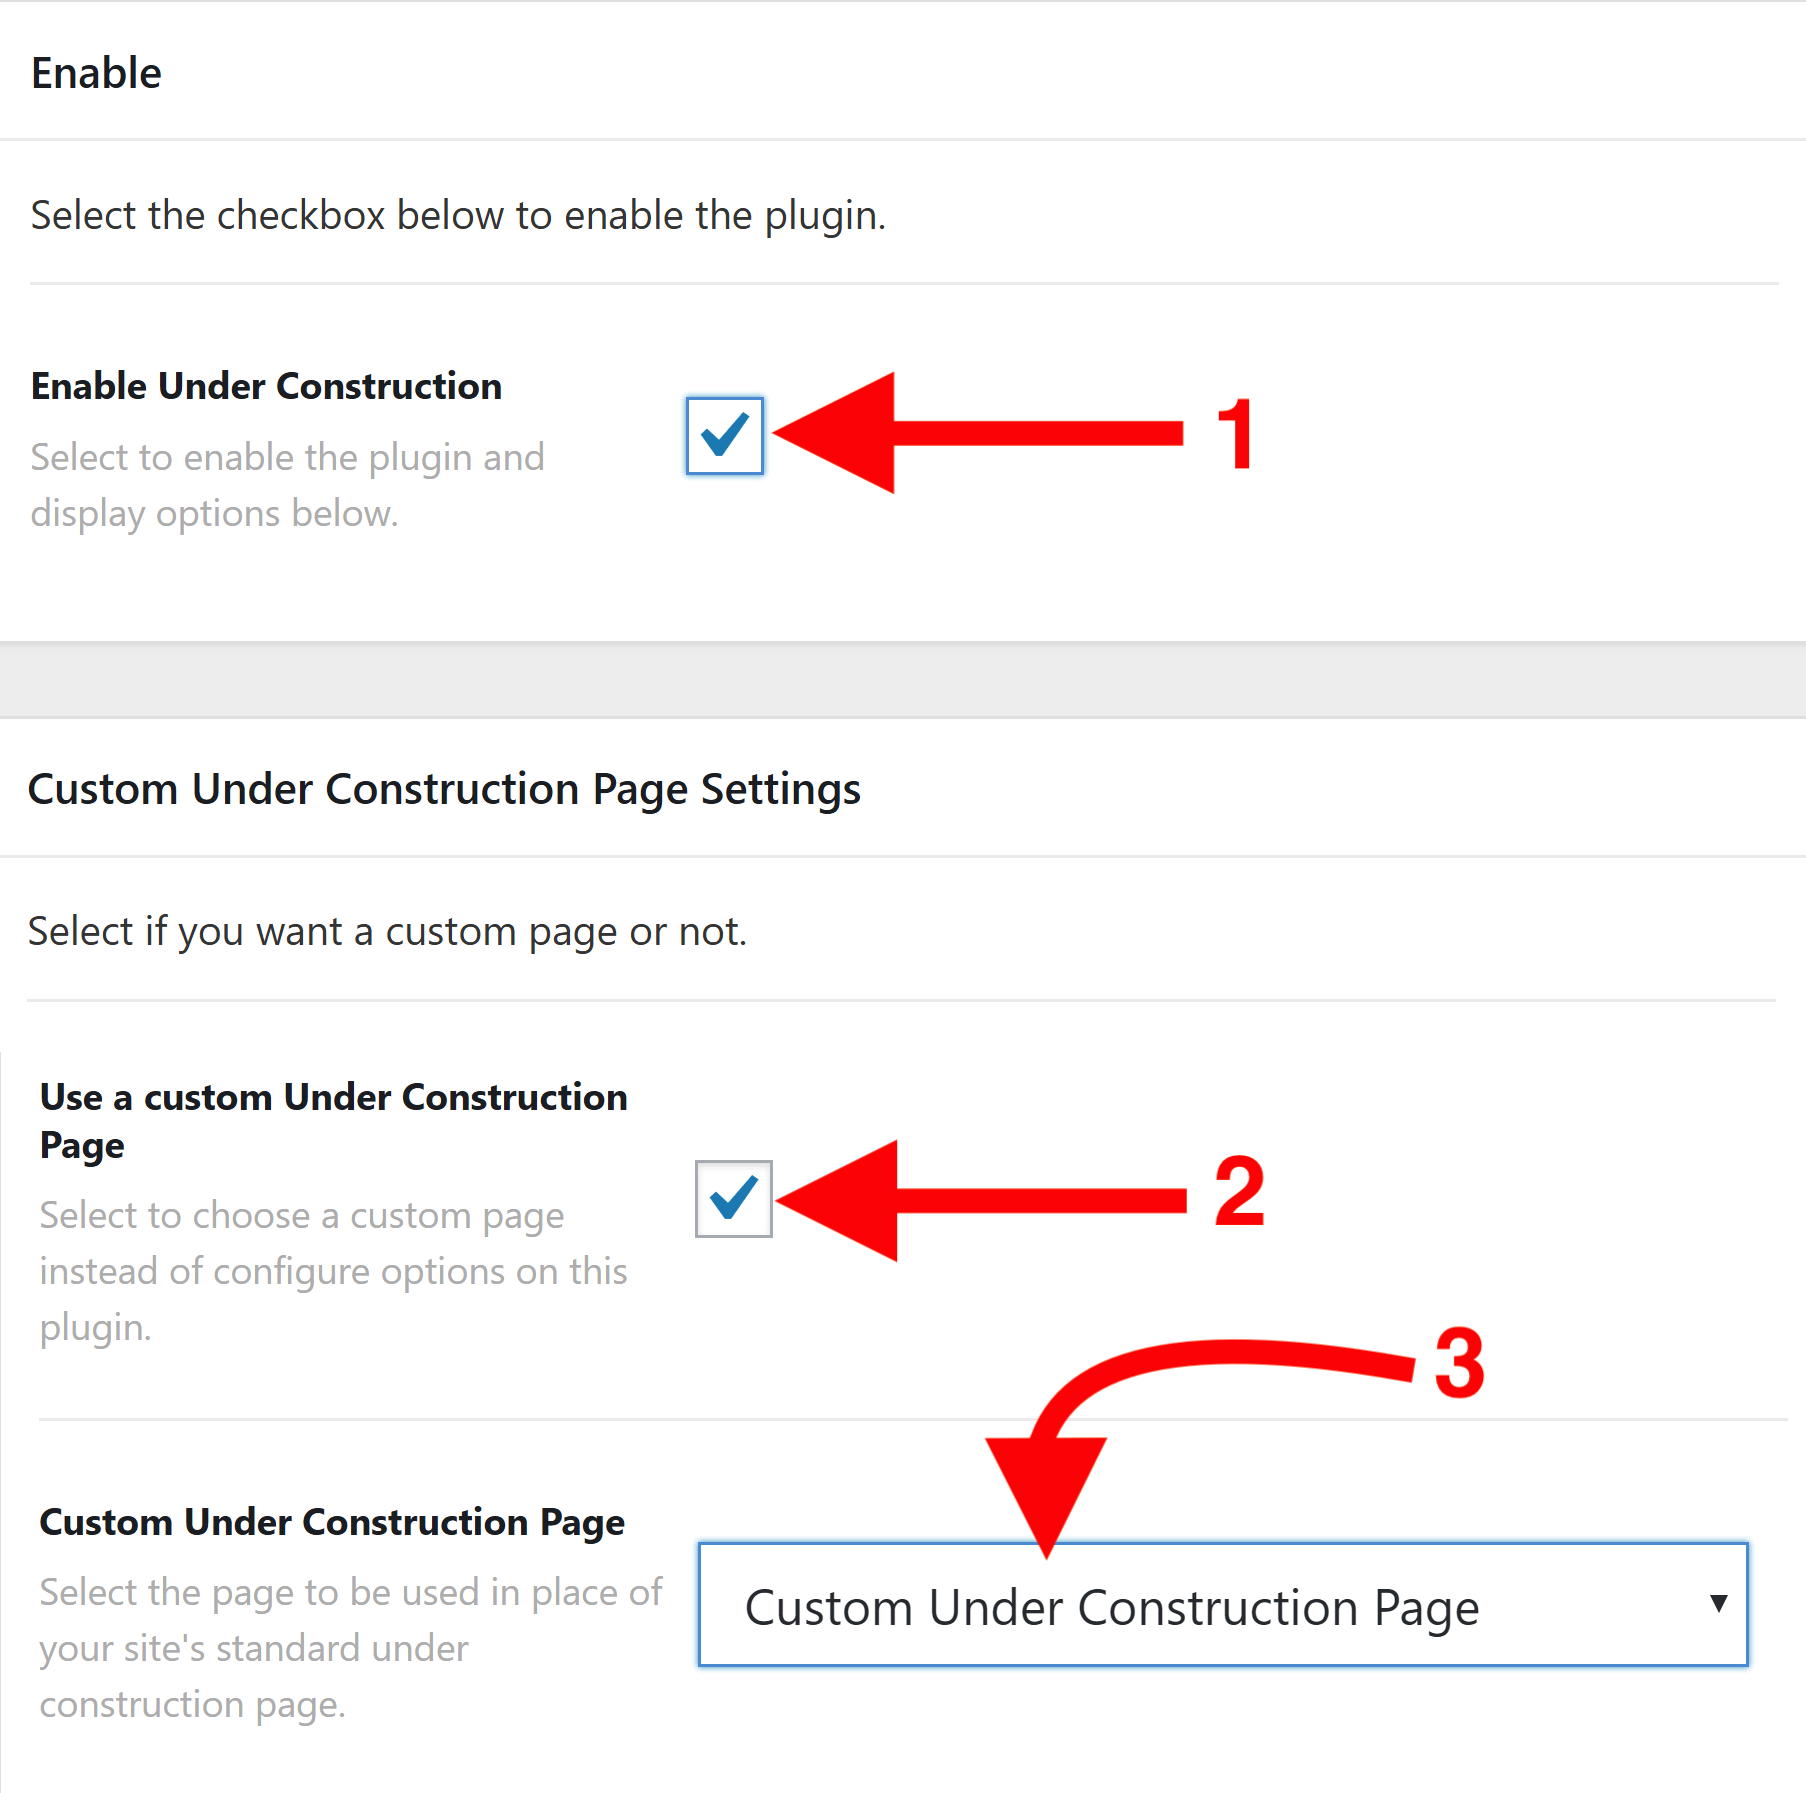 Under Construction Advanced Settings